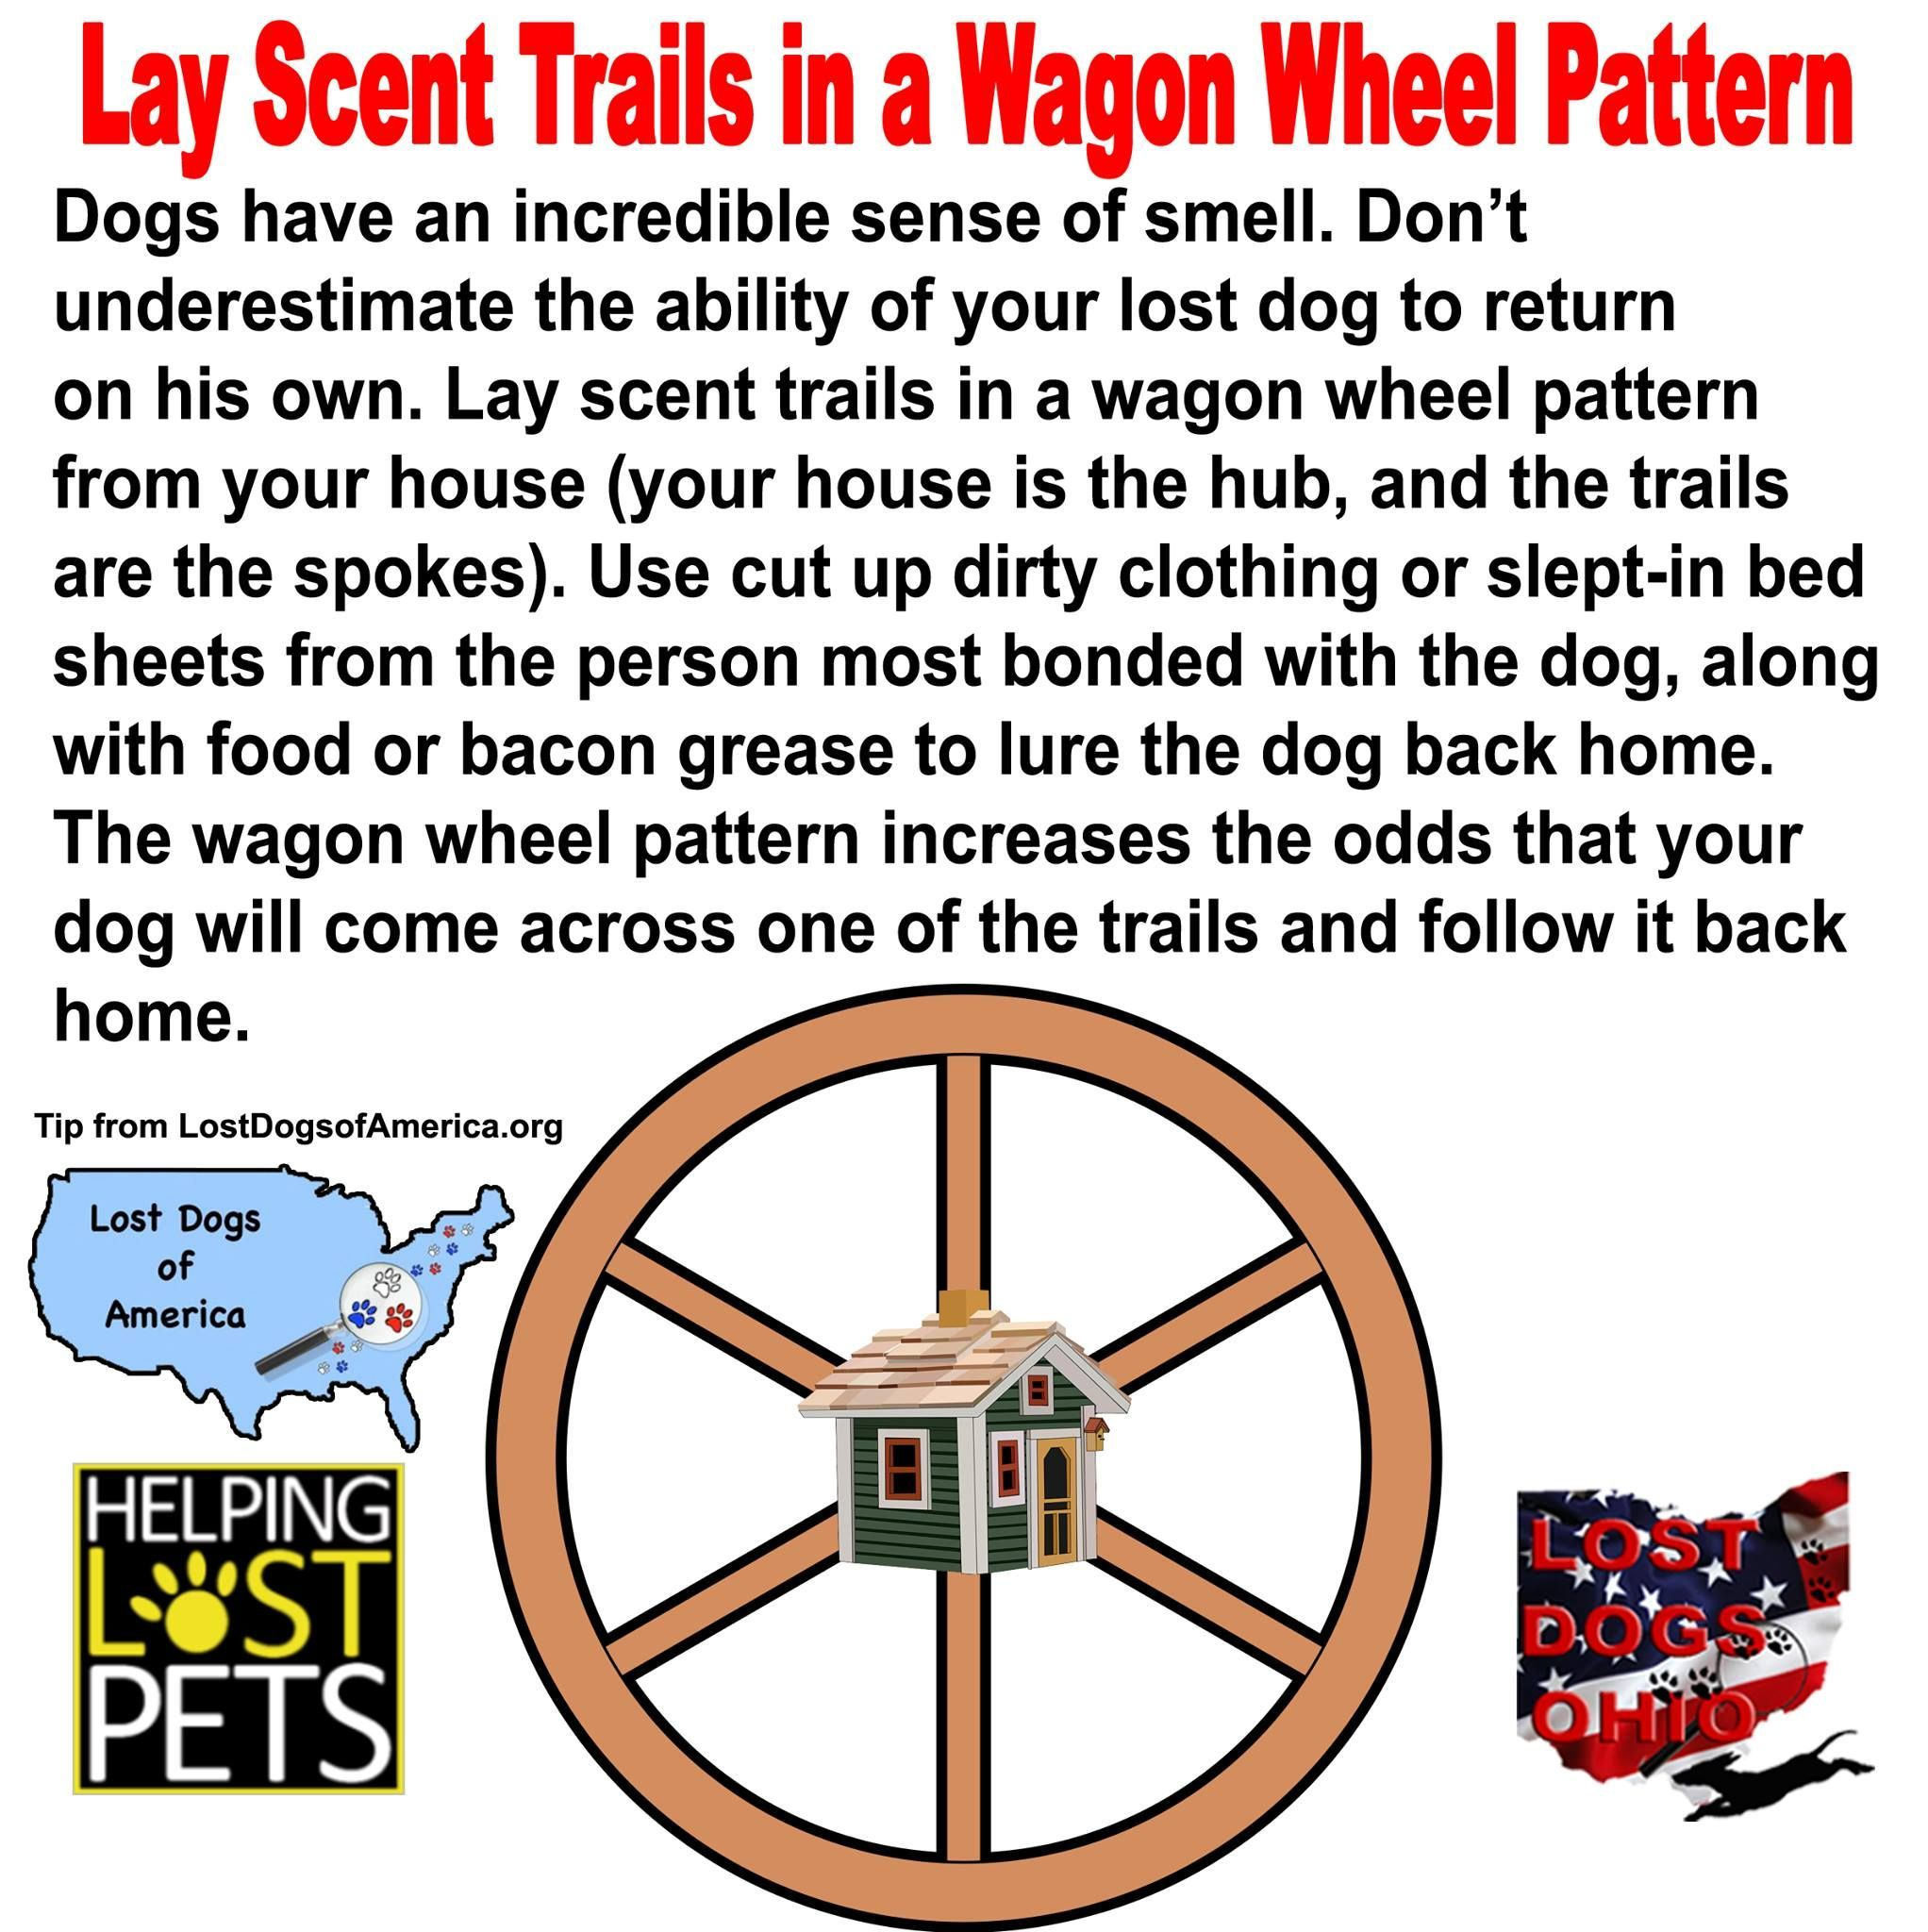 Your Dog Has A Great Sense Of Smell Help Him Find You By Laying Scent Trails That He Can Follow Losing A Dog Losing A Pet Dogs